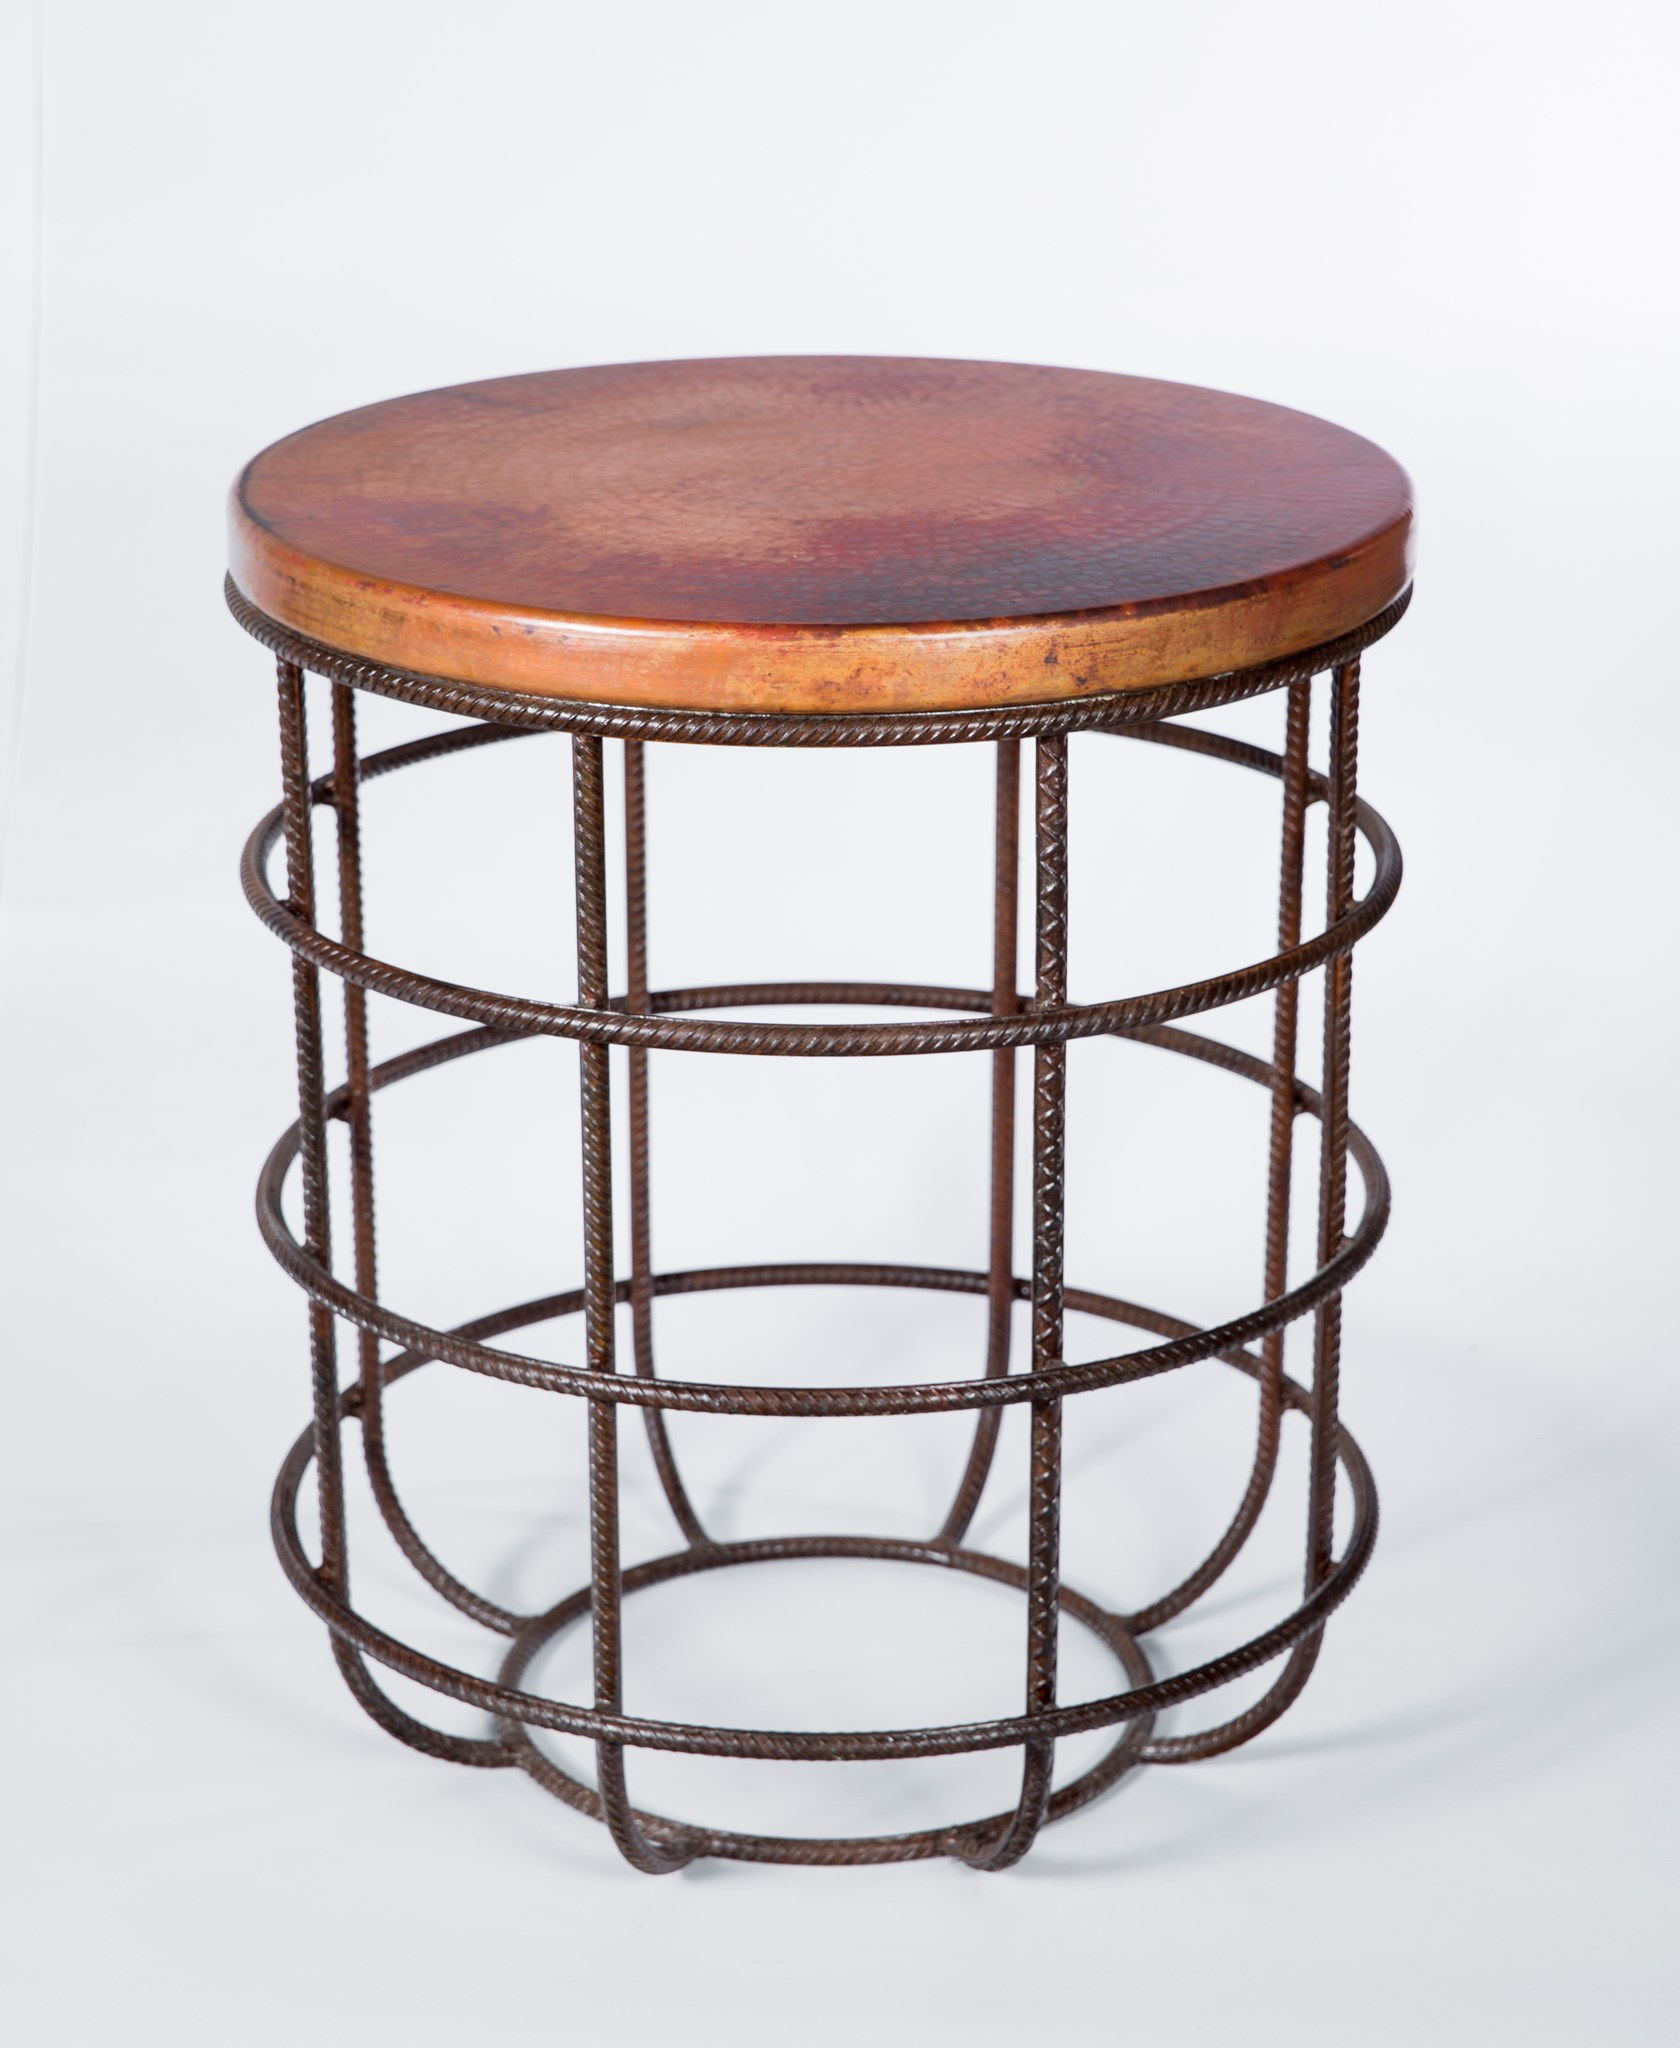 Super Axel Side Table In Rebar With Round Hammered Copper Top Gamerscity Chair Design For Home Gamerscityorg